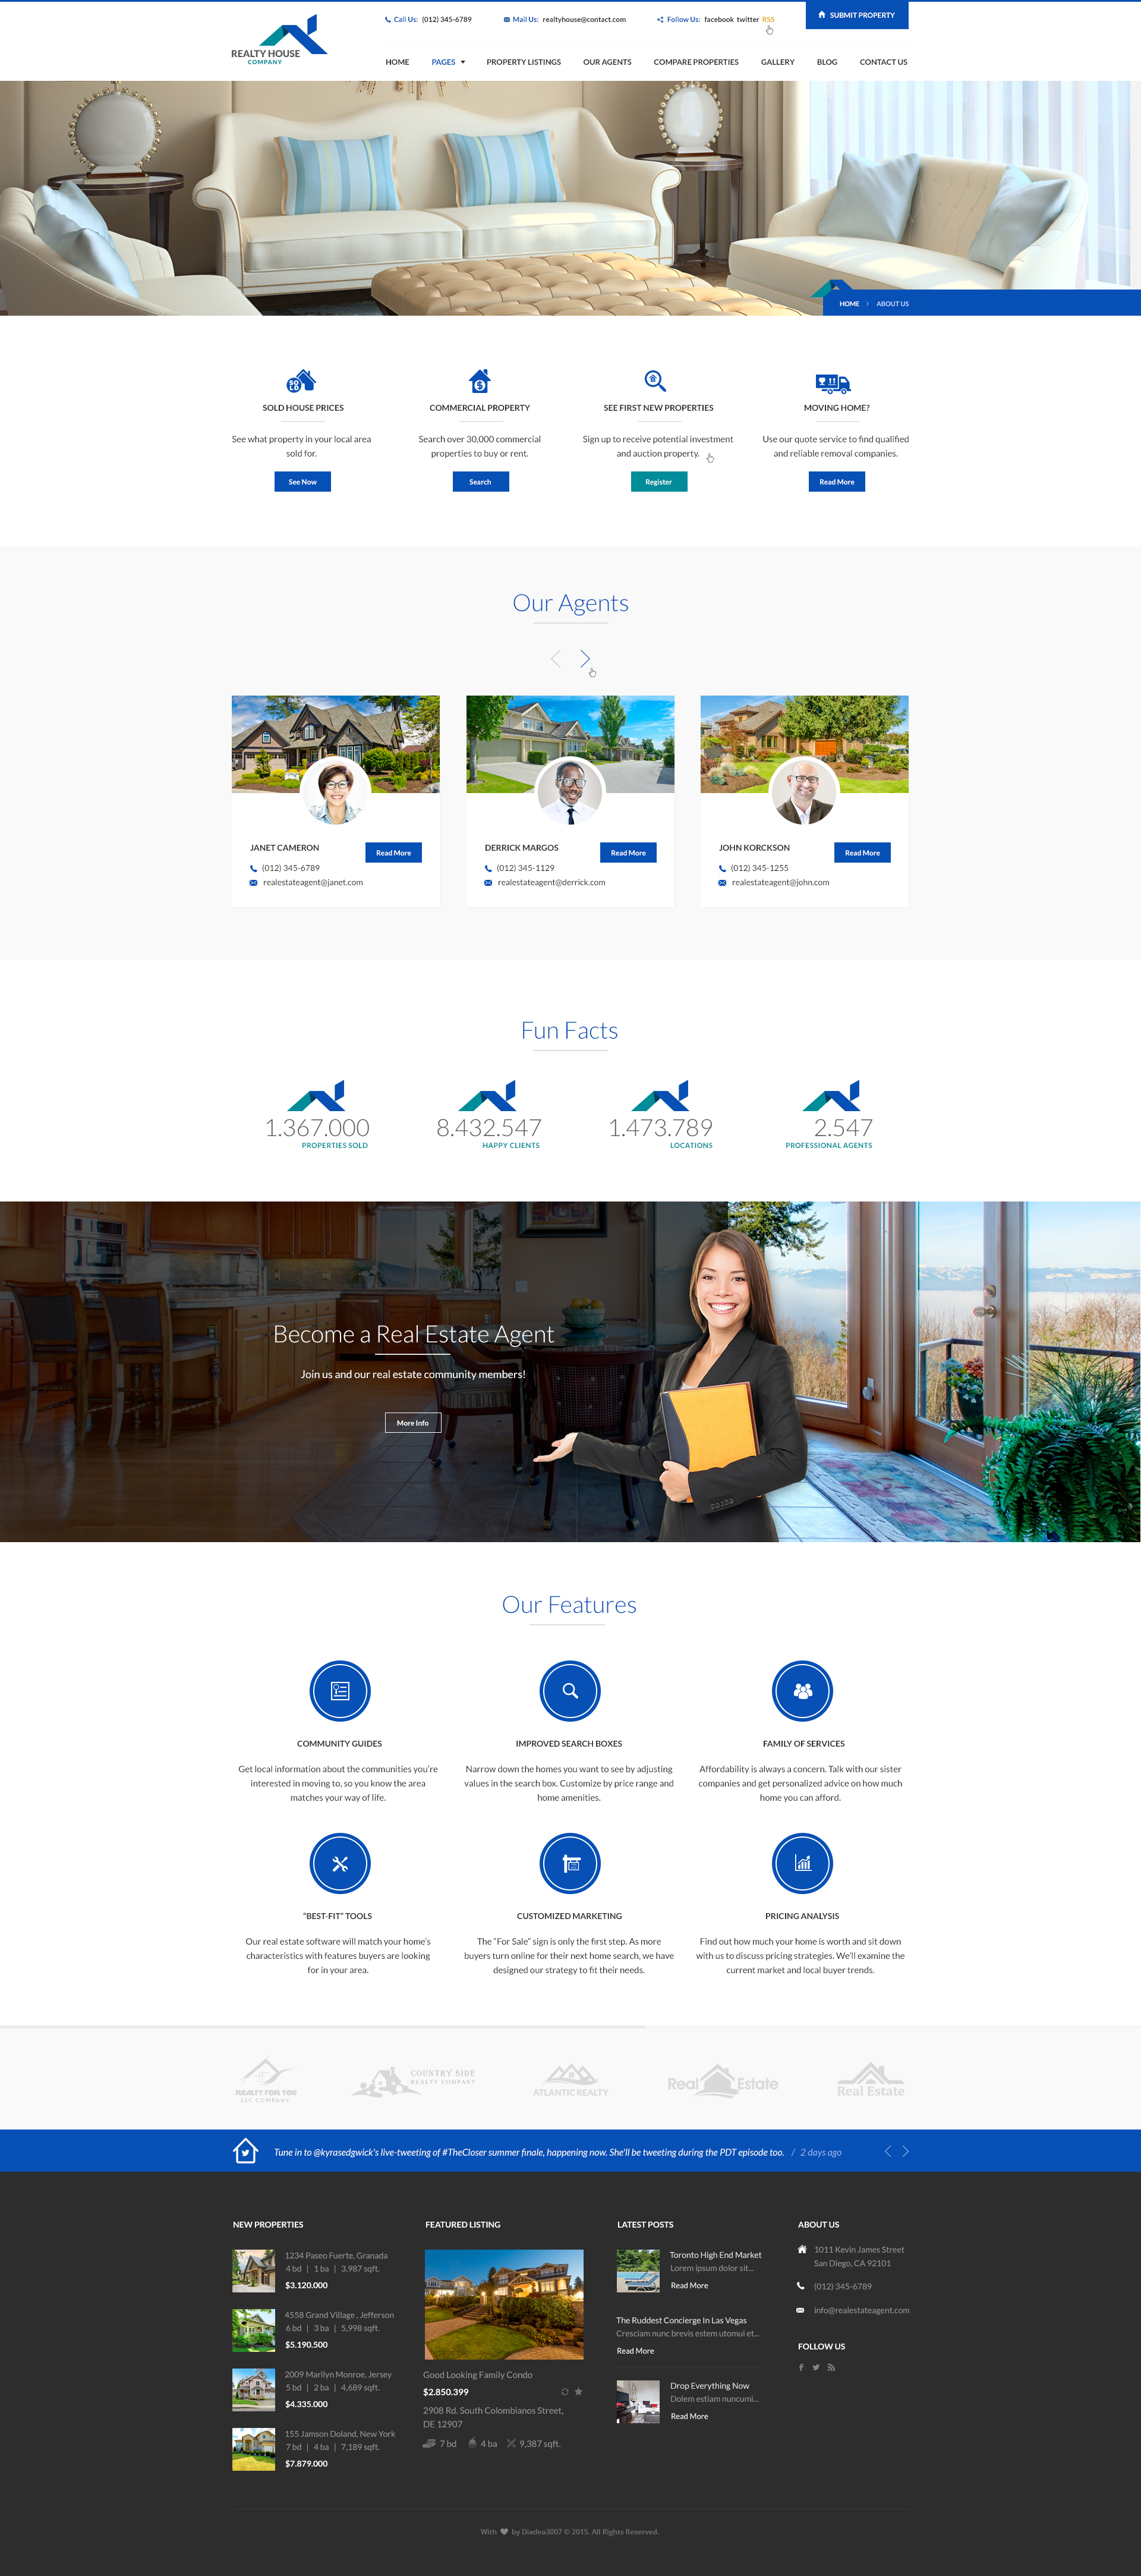 realty house real estate psd template by diadea3007 themeforest 09 property listing map view dropdown filters jpg 10 property listing single post jpg 11 compare properties jpg 12 agents listing jpg